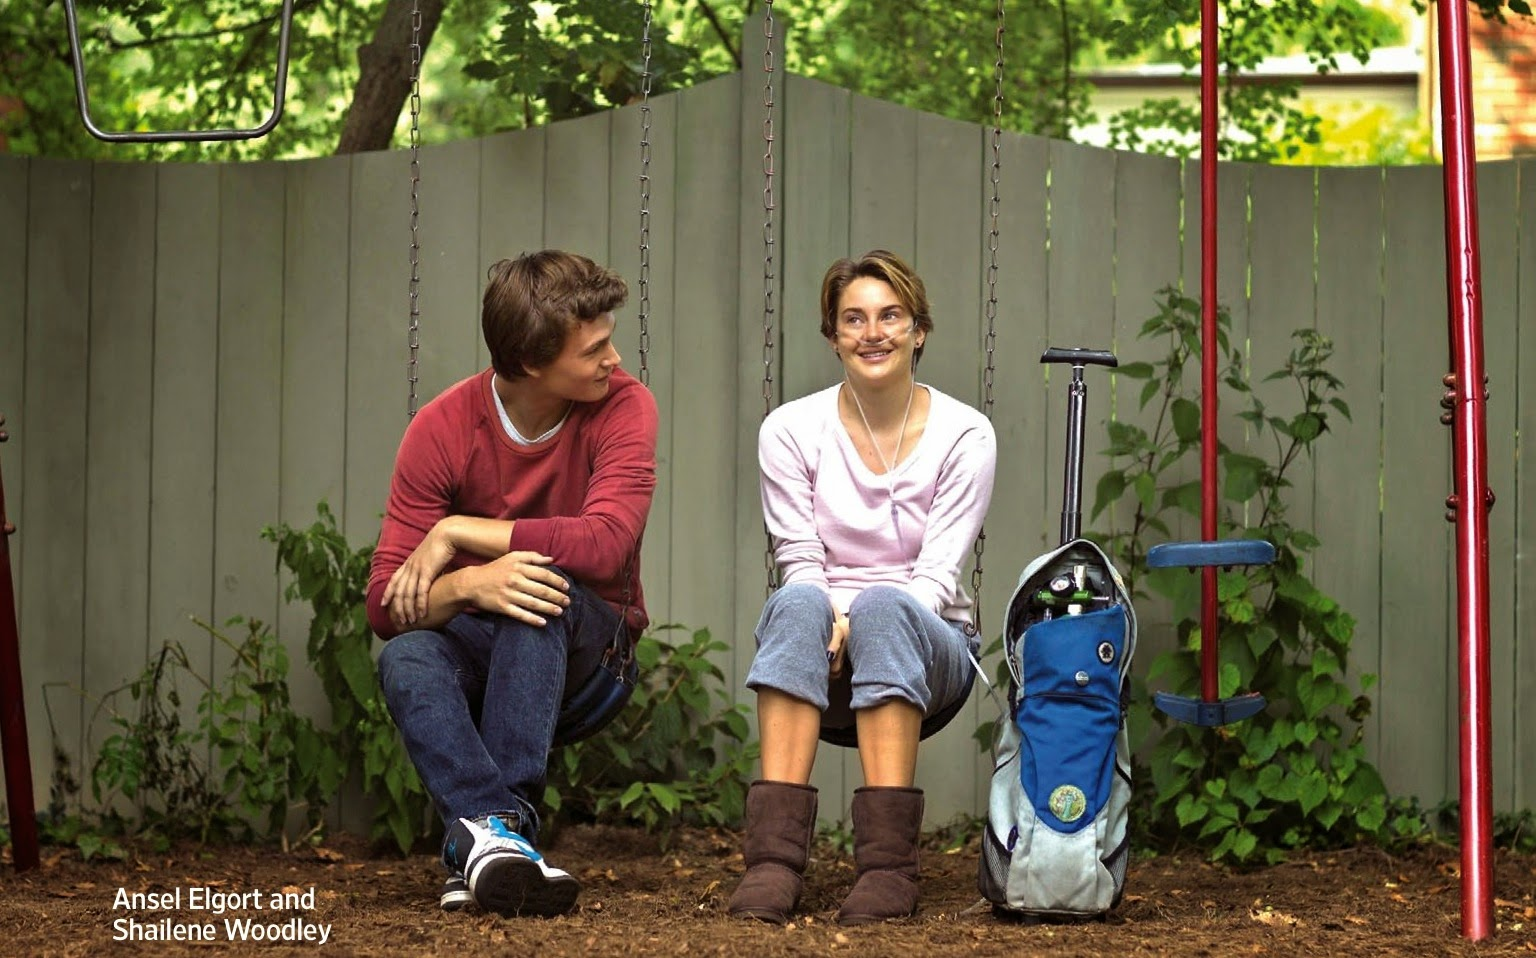 تحميل فيلم the fault in our stars